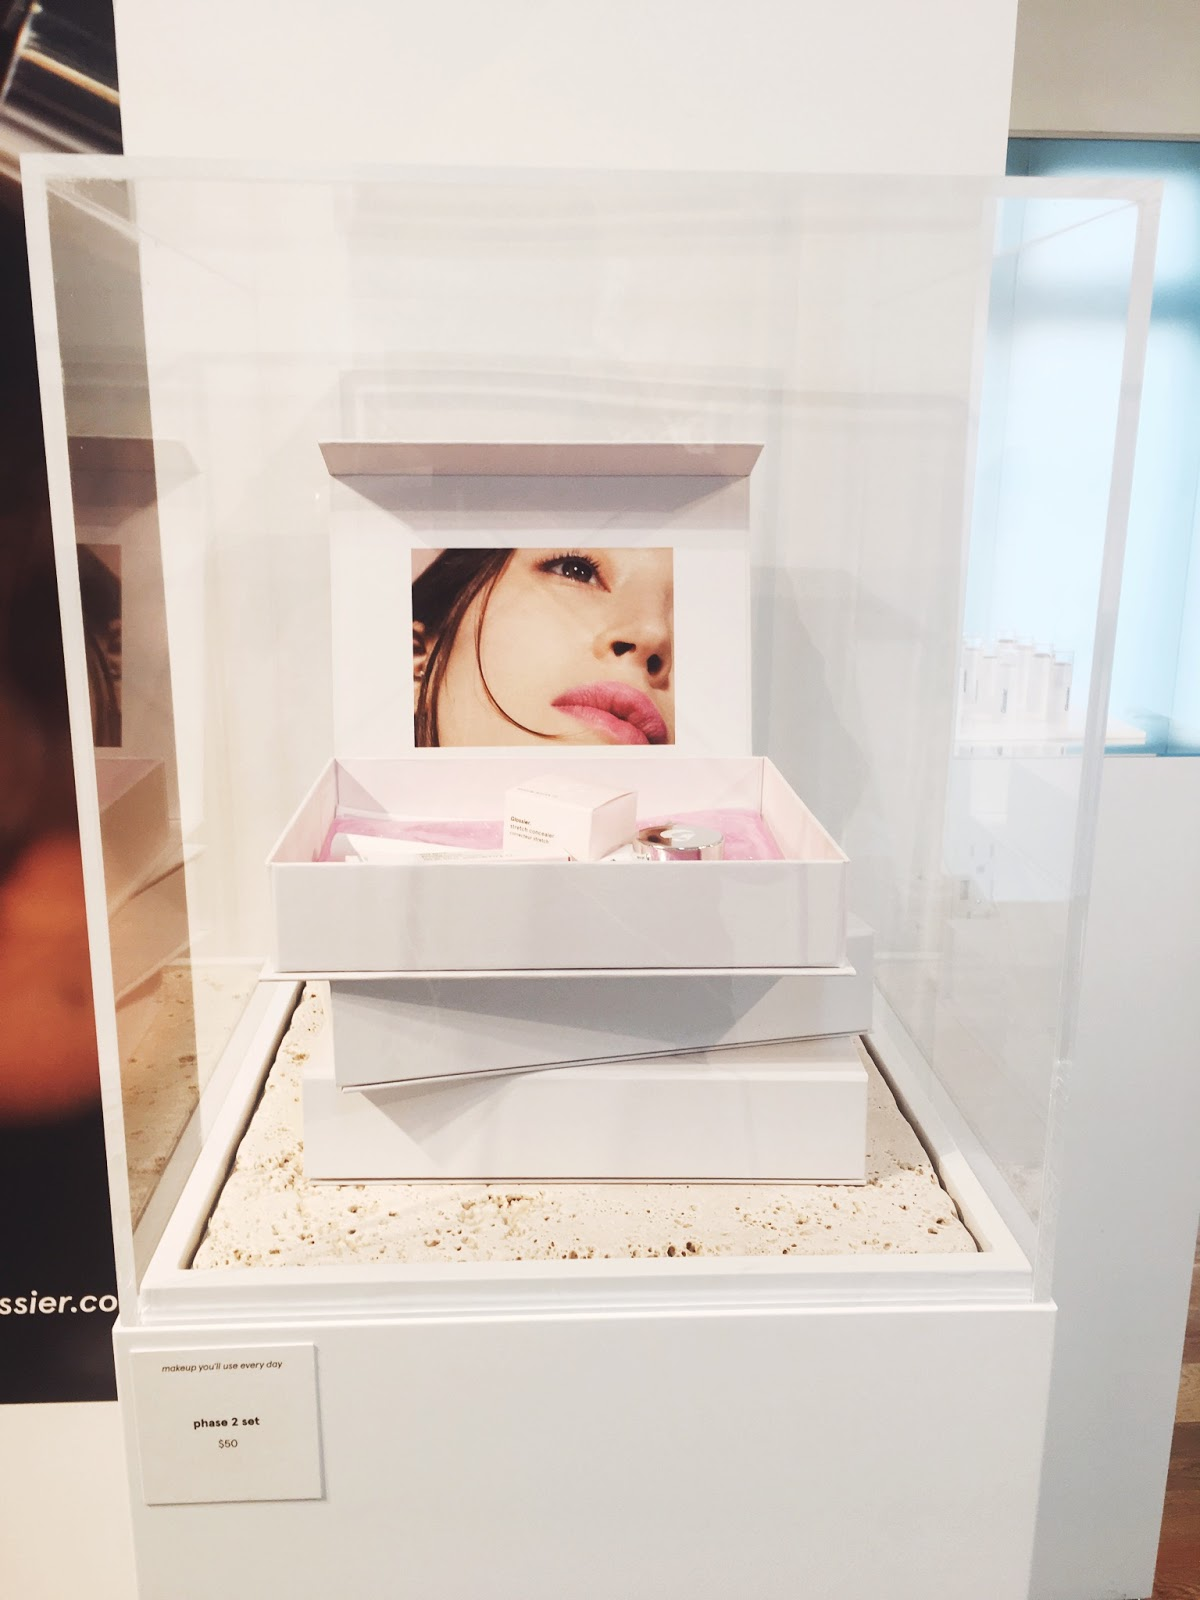 glossier phase 2 set, glossier showroom phase 2, glossier nyc showroom, glossier showroom